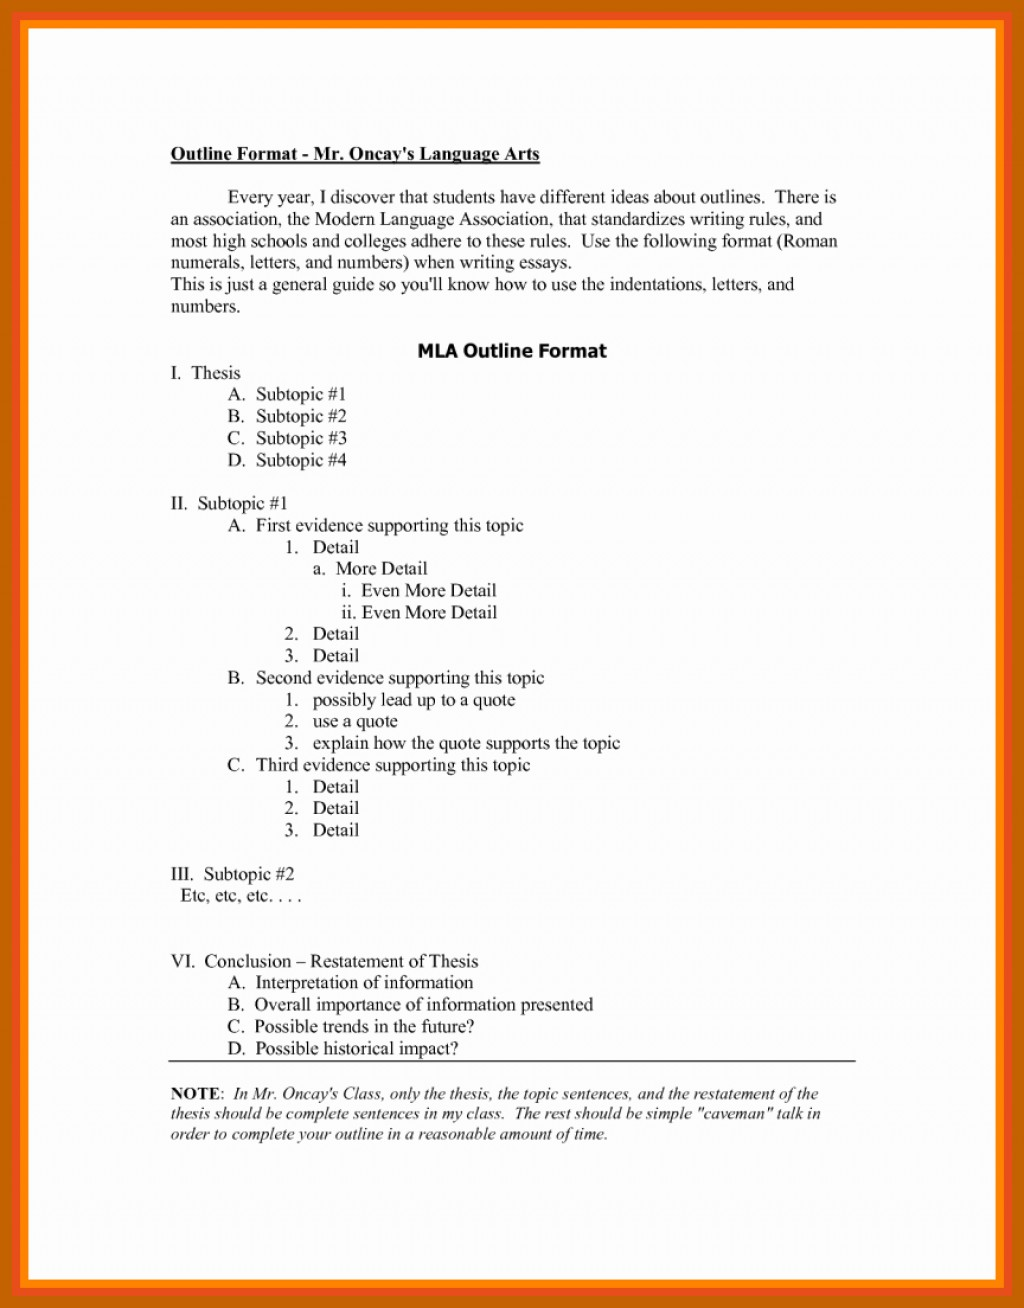 006 Mla Style Research Paper Format Best Of Outline In How To Fantastic A Large